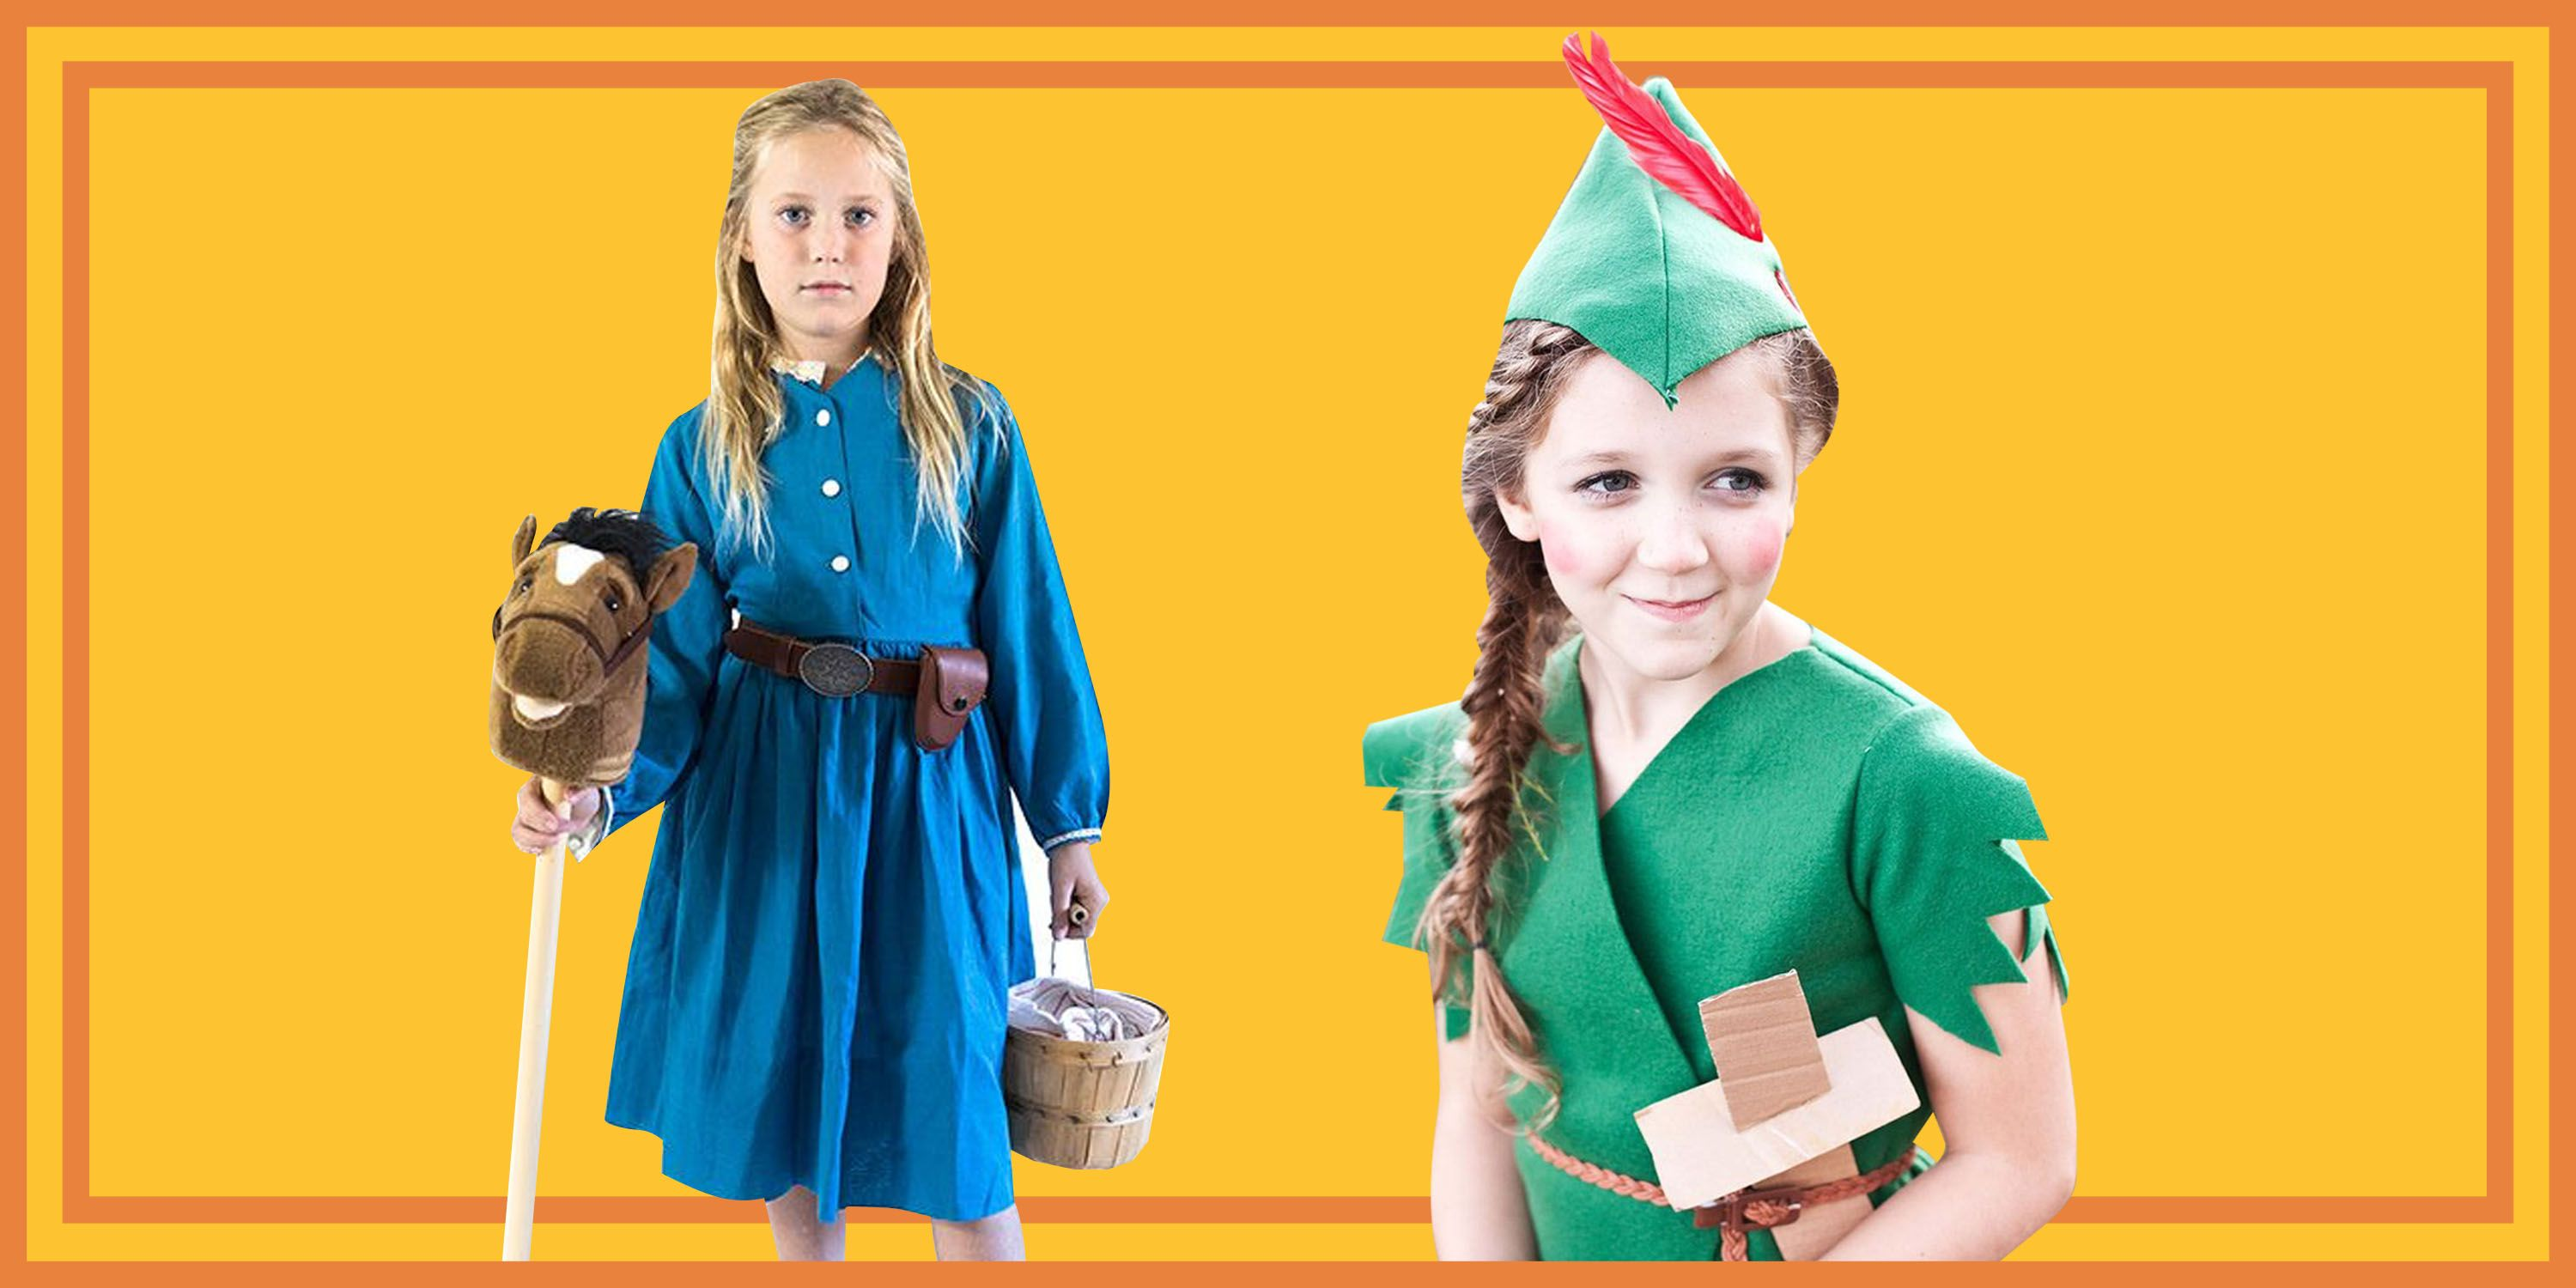 75+ Homemade Halloween Costumes for Kids - Easy DIY Kids Halloween Costume Ideas 2018